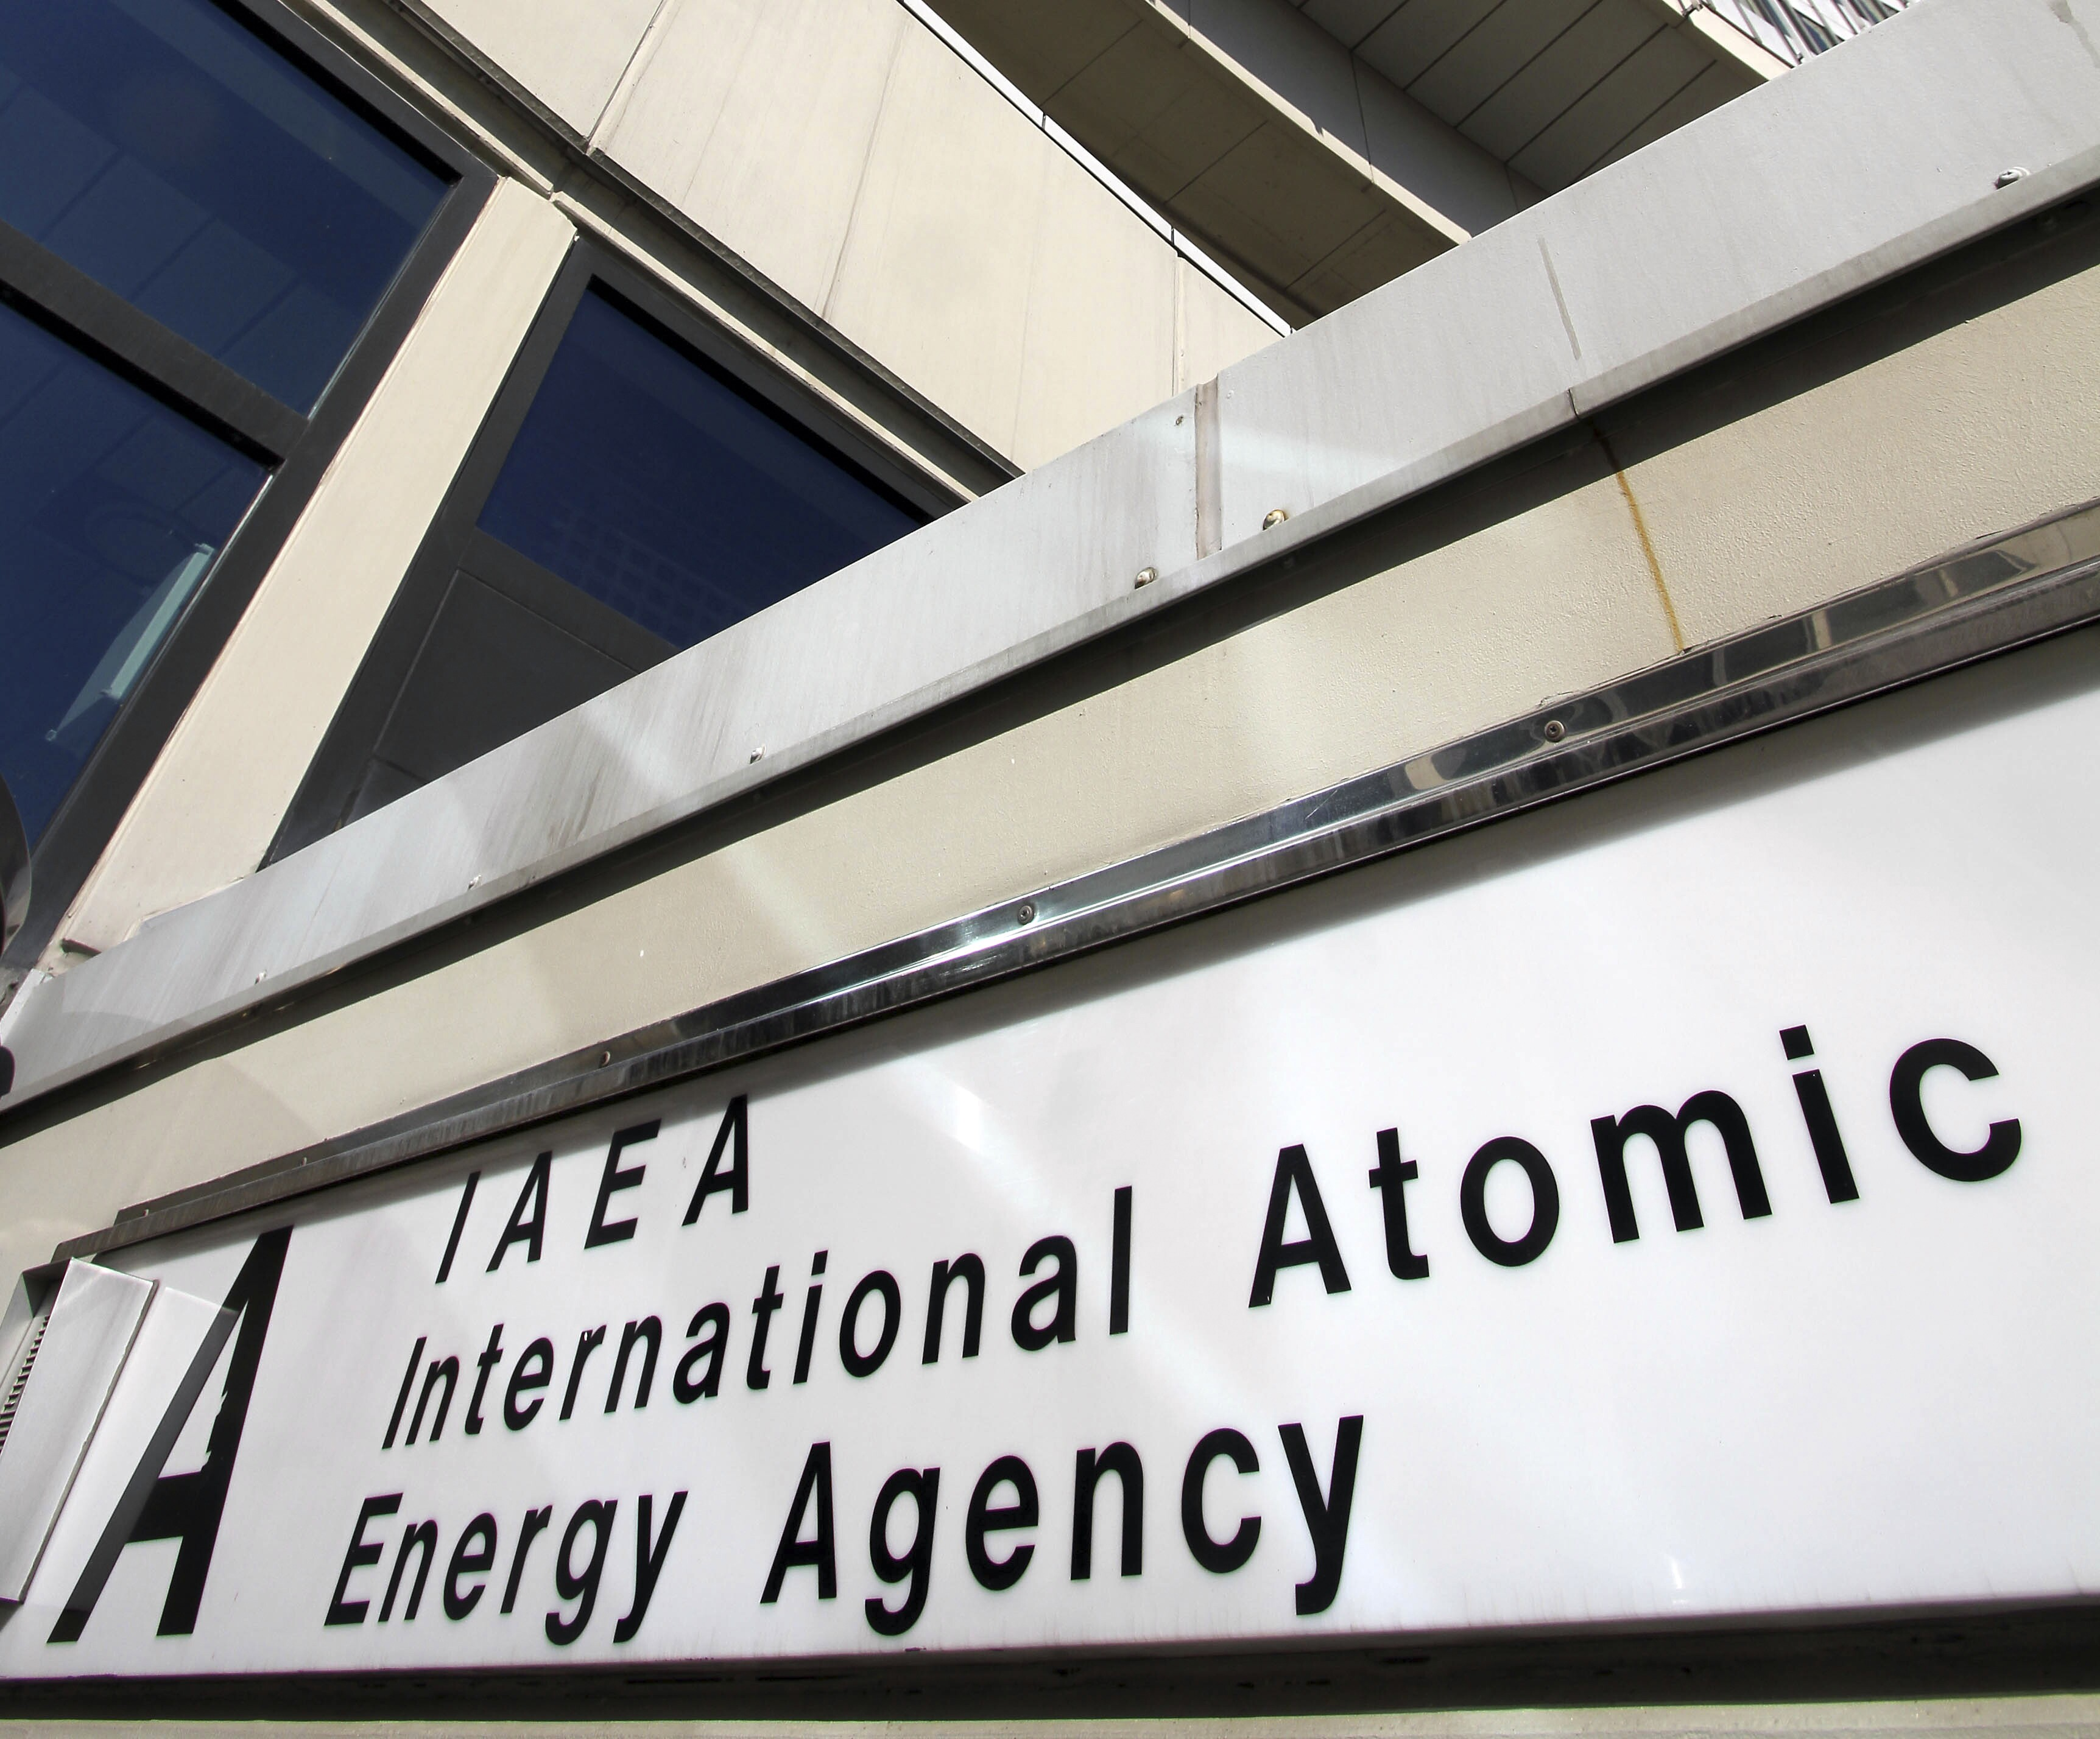 Ap Releases Draft Side Deal Between Iran And Iaea